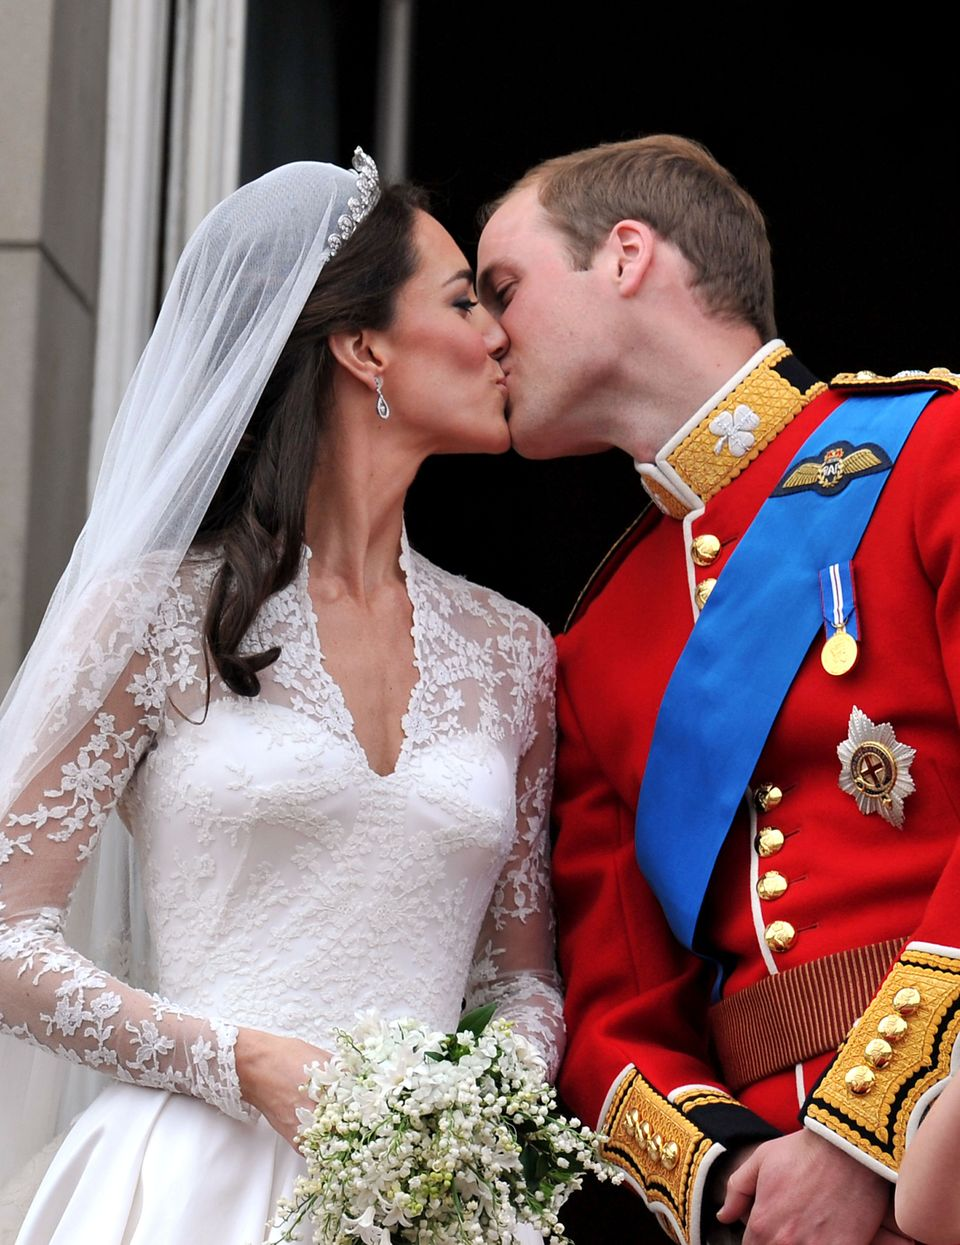 Thewedding of Prince William and Catherine Middletontook place on 29 April